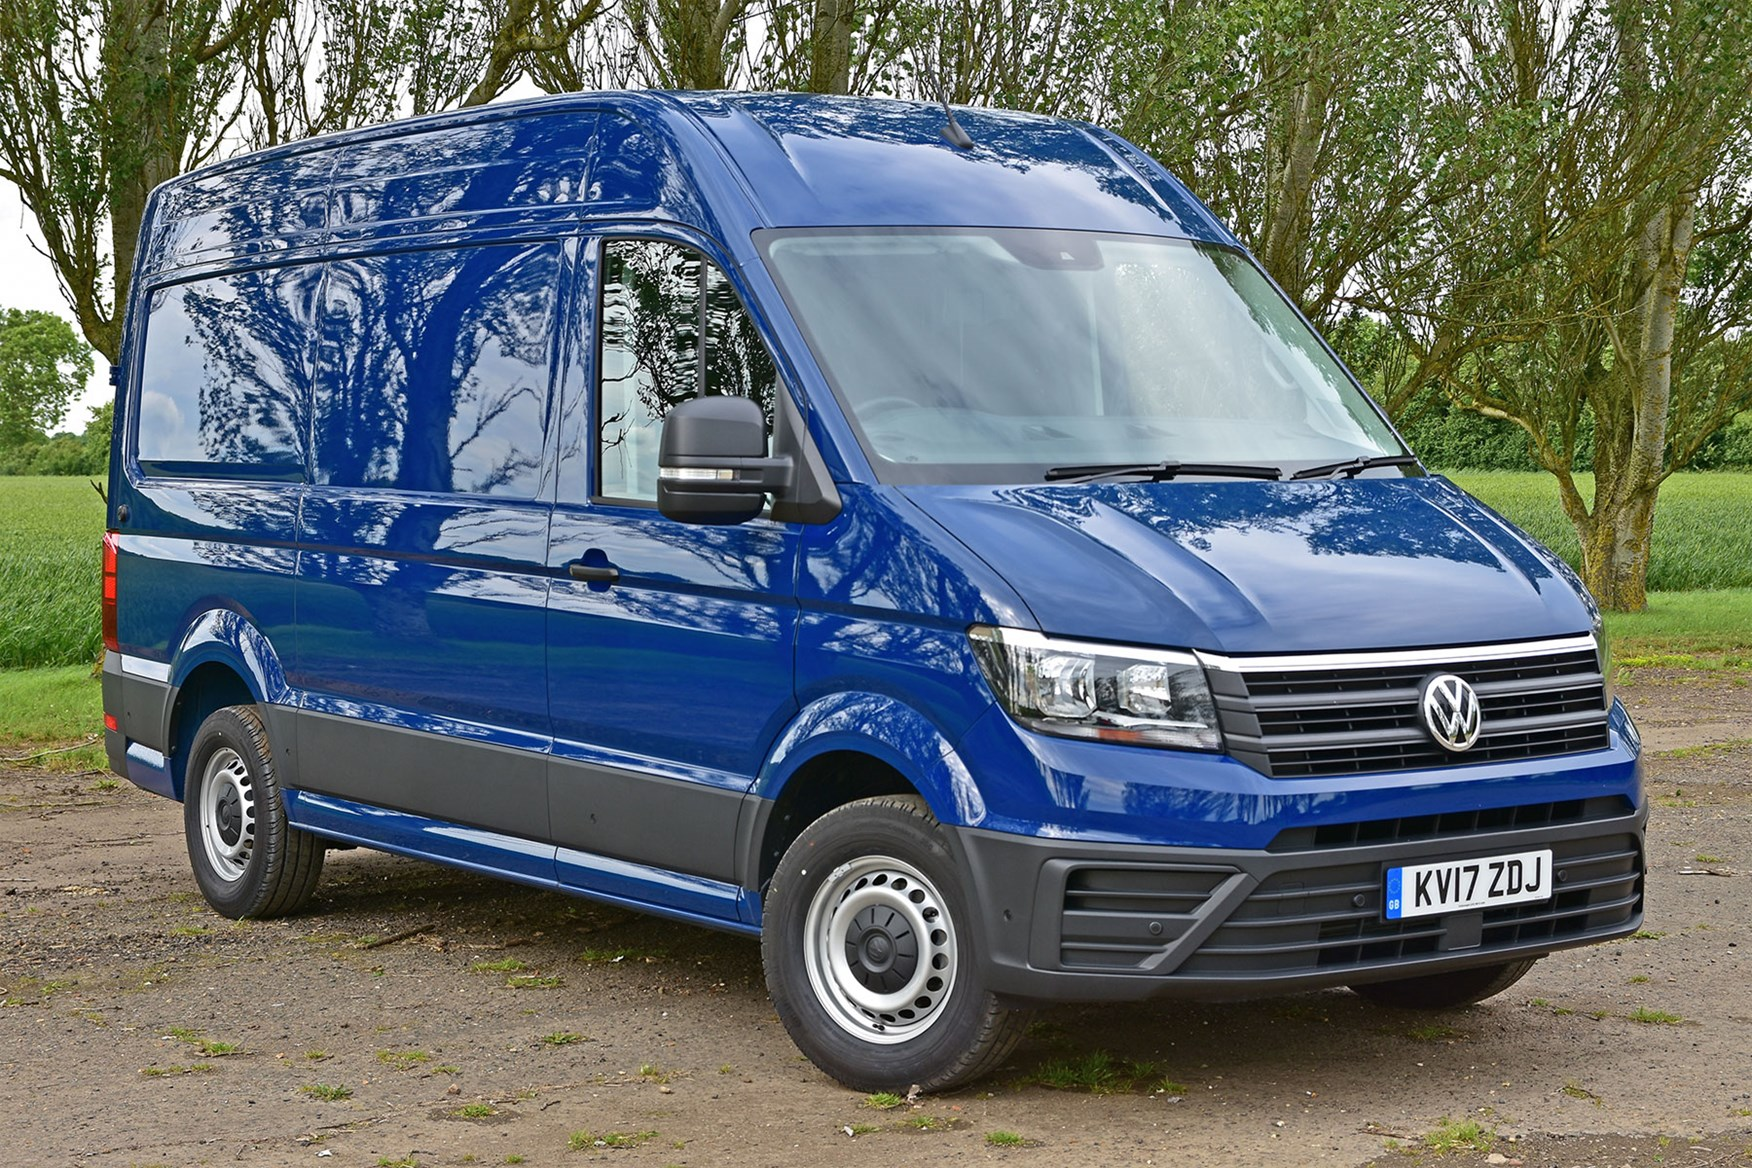 VW Crafter FWD review - front view, blue